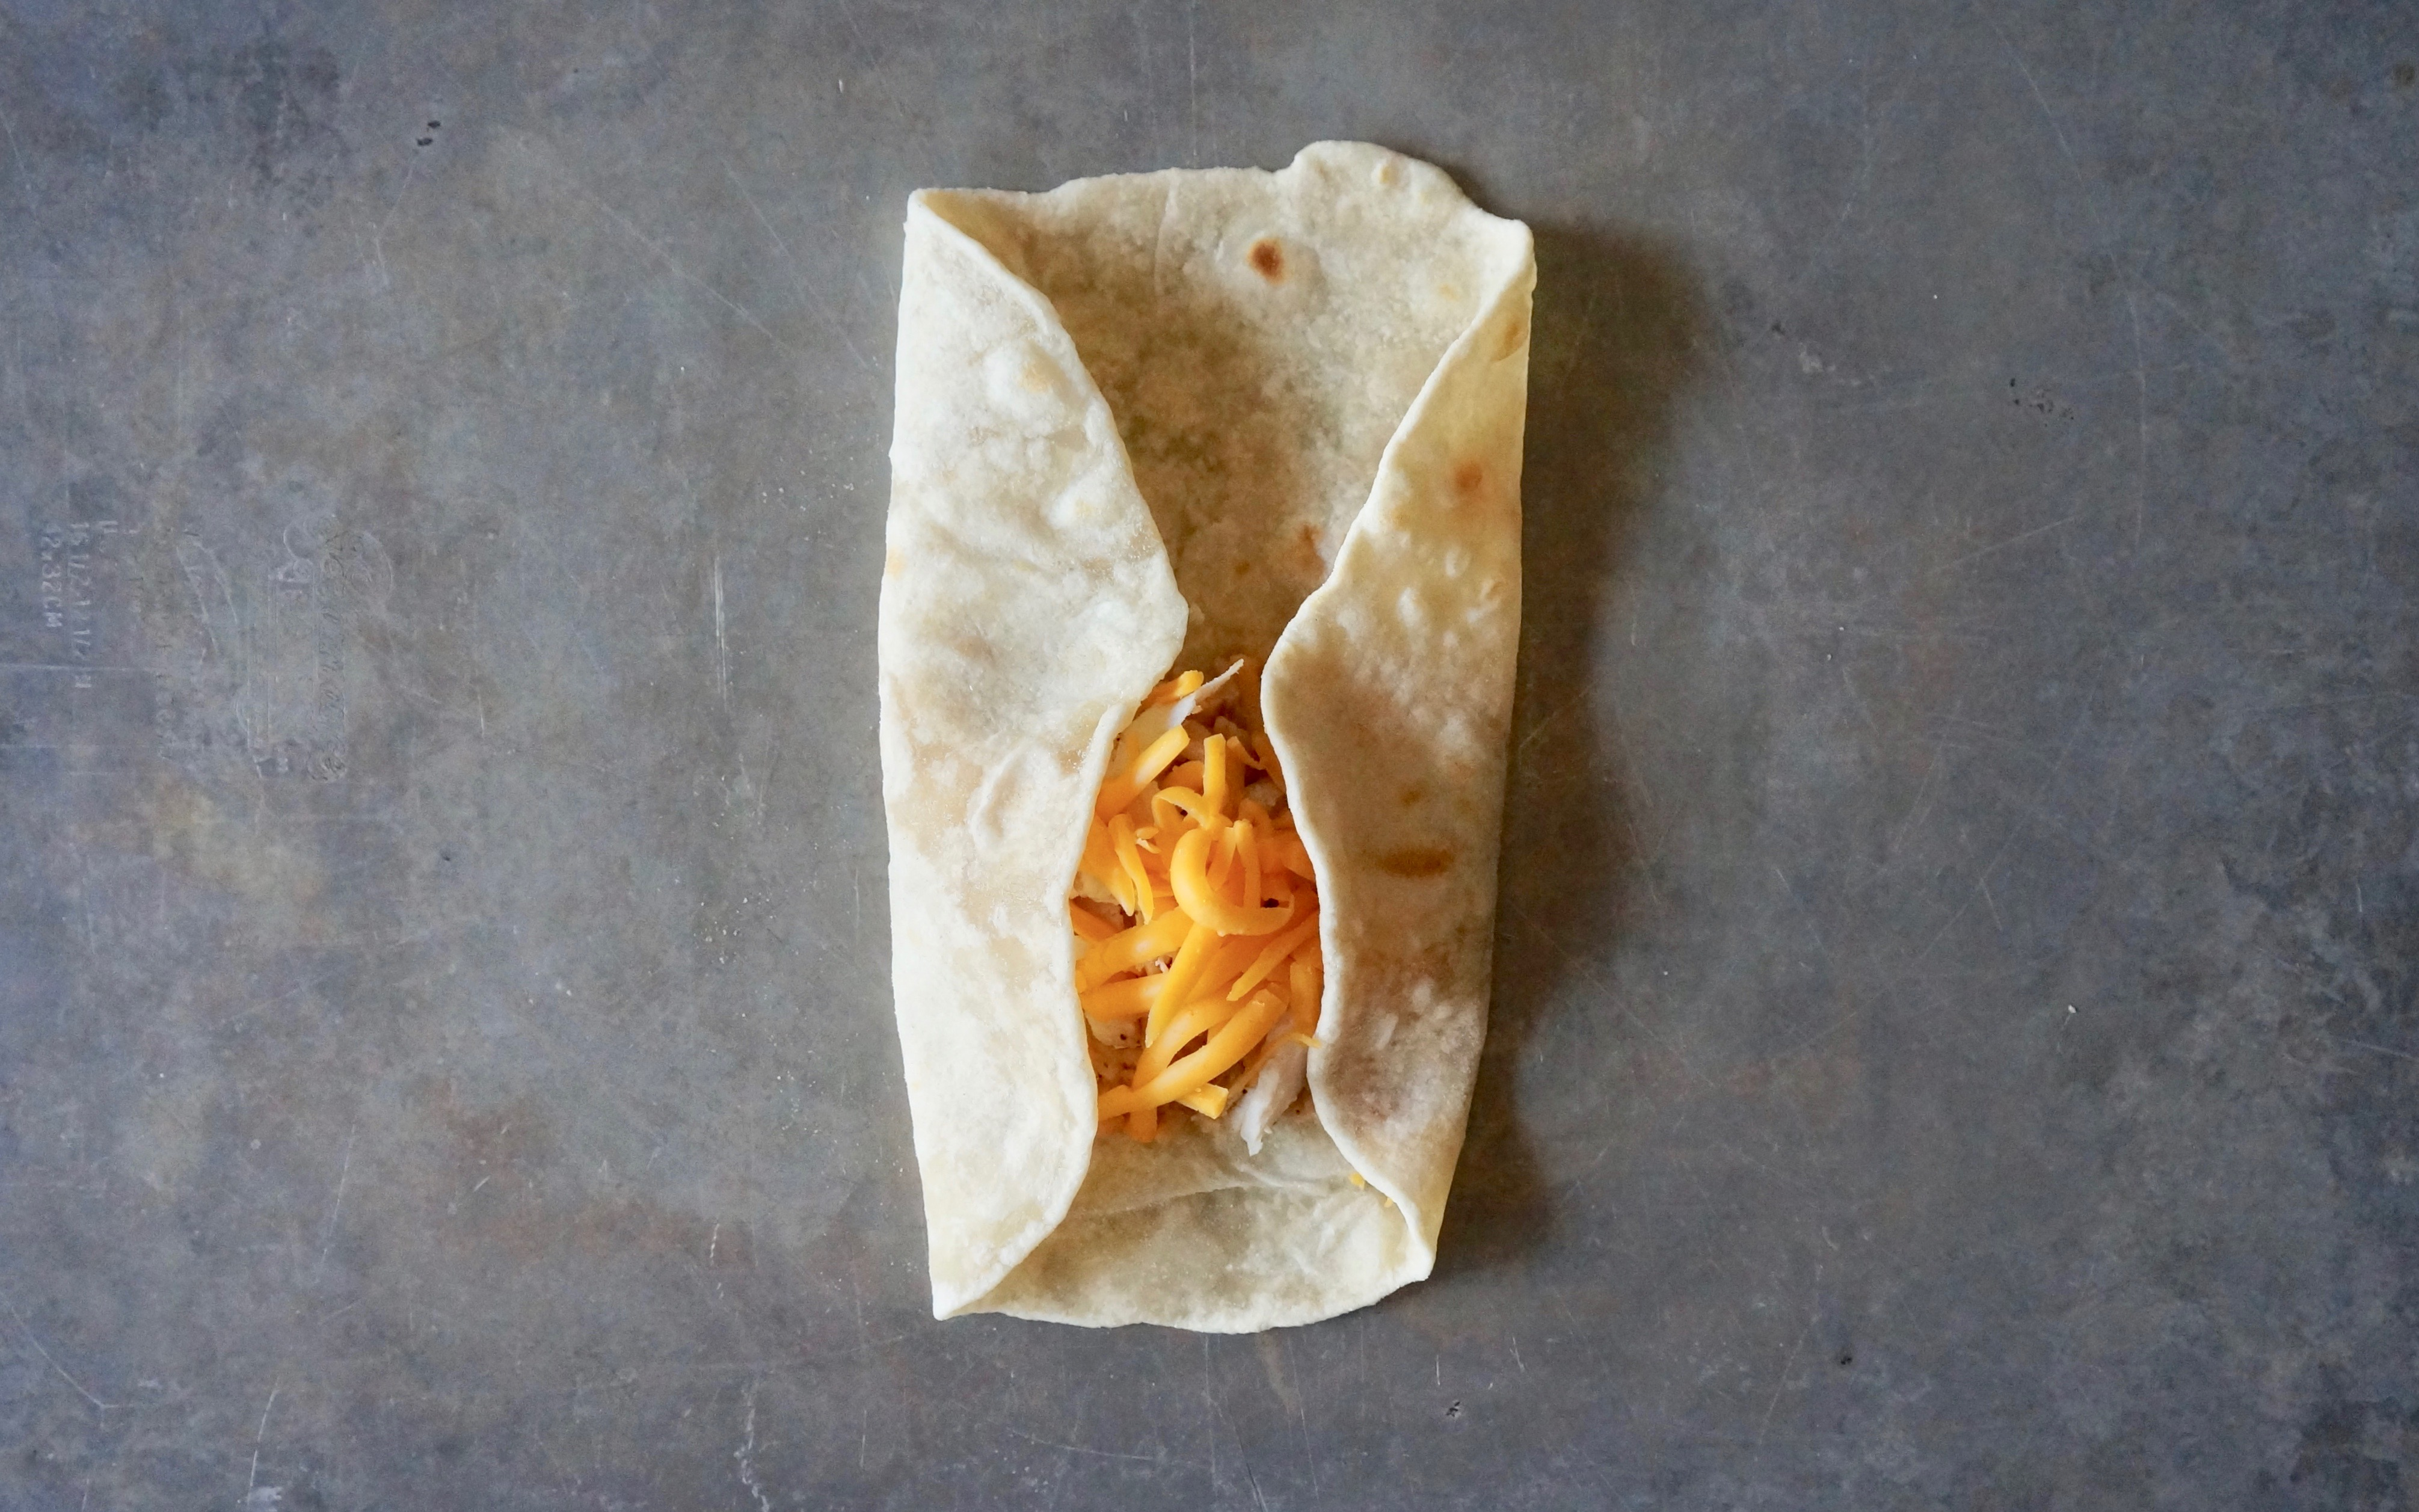 How-To-Wrap-Chimigangas-Rebecca-Gordon-Editor-In-Chief-Buttermilk-Lipstick-Culinary-Techniques-Cooking-Class-Southern-Hostess-Pastry-Chef-RebeccaGordon-Birmingham-Alabama